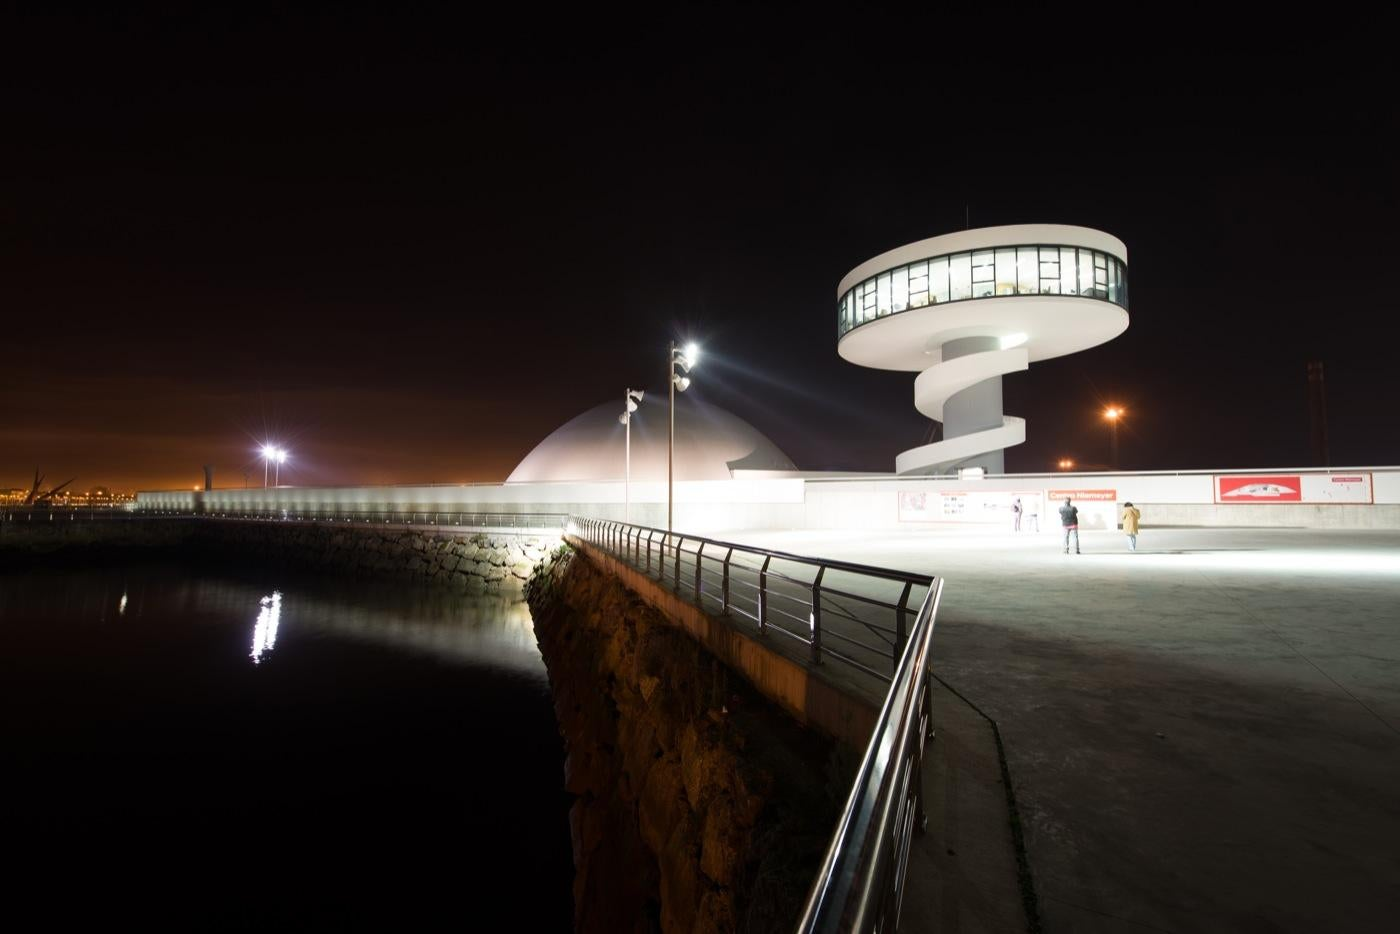 International Oscar Niemeyer Cultural Center